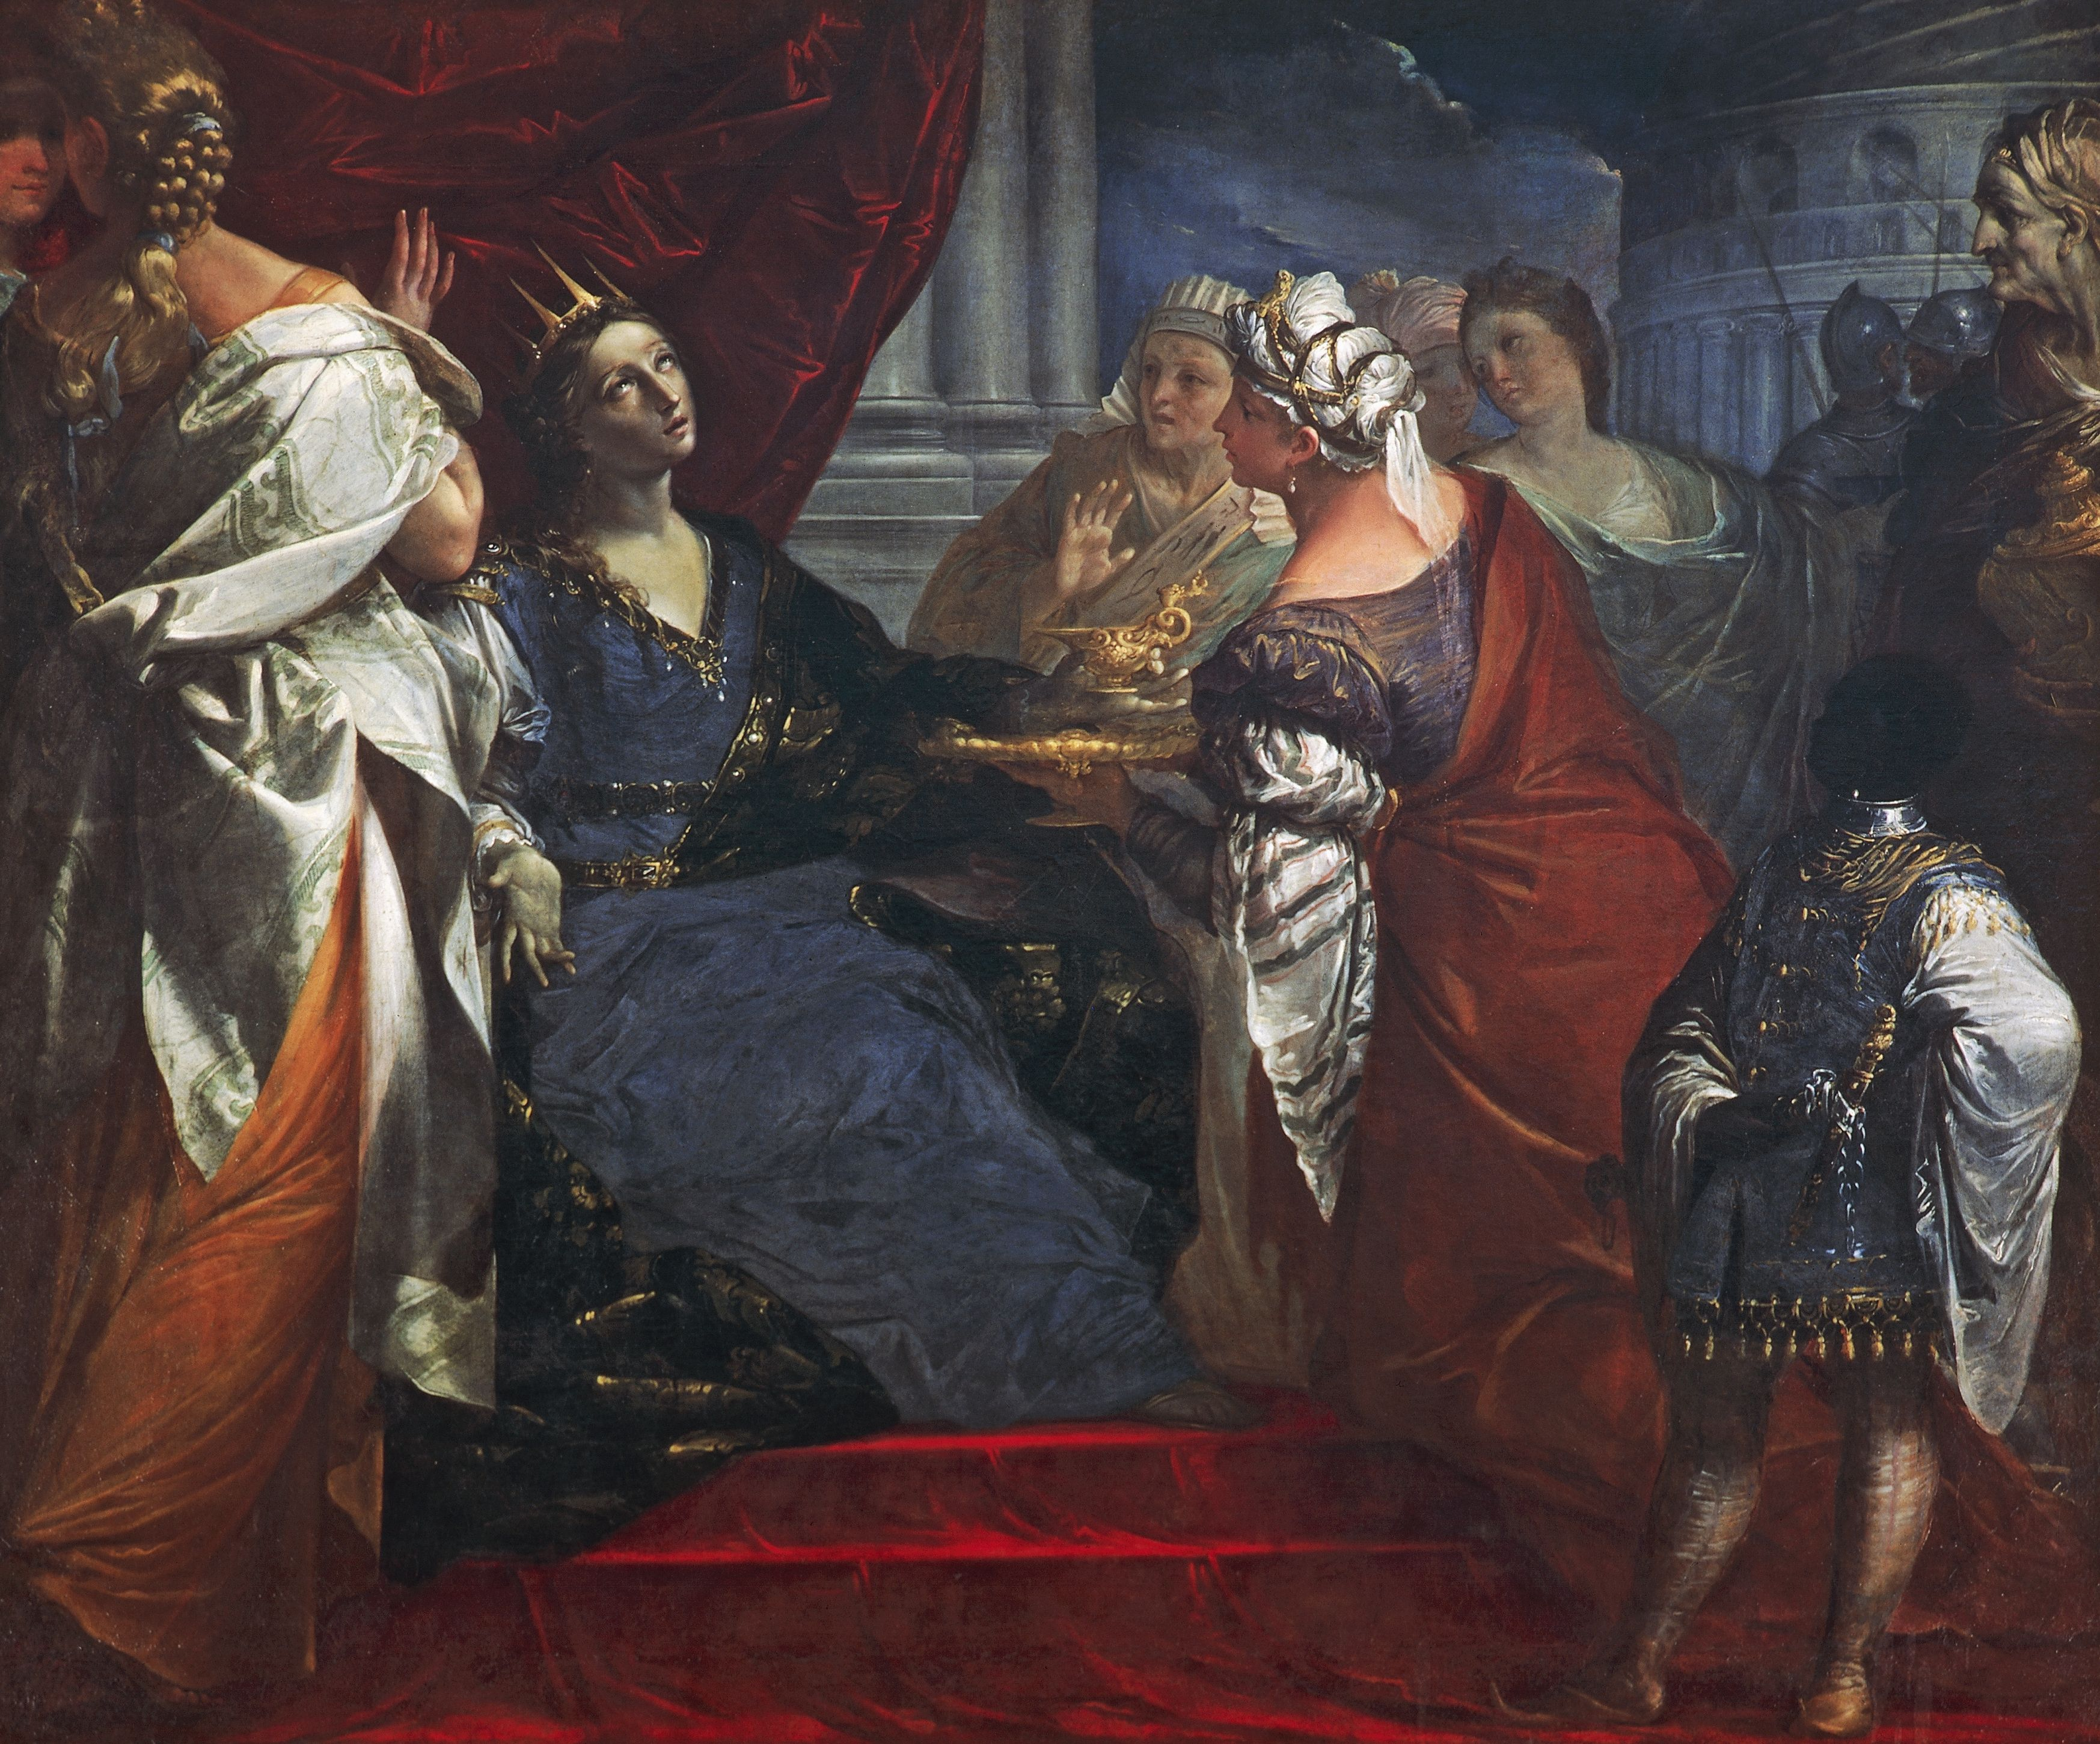 Queen Artemisia drinking ashes of Mausolus, by Giovan Gioseffo del Sole (1654-1719), Oil on canvas